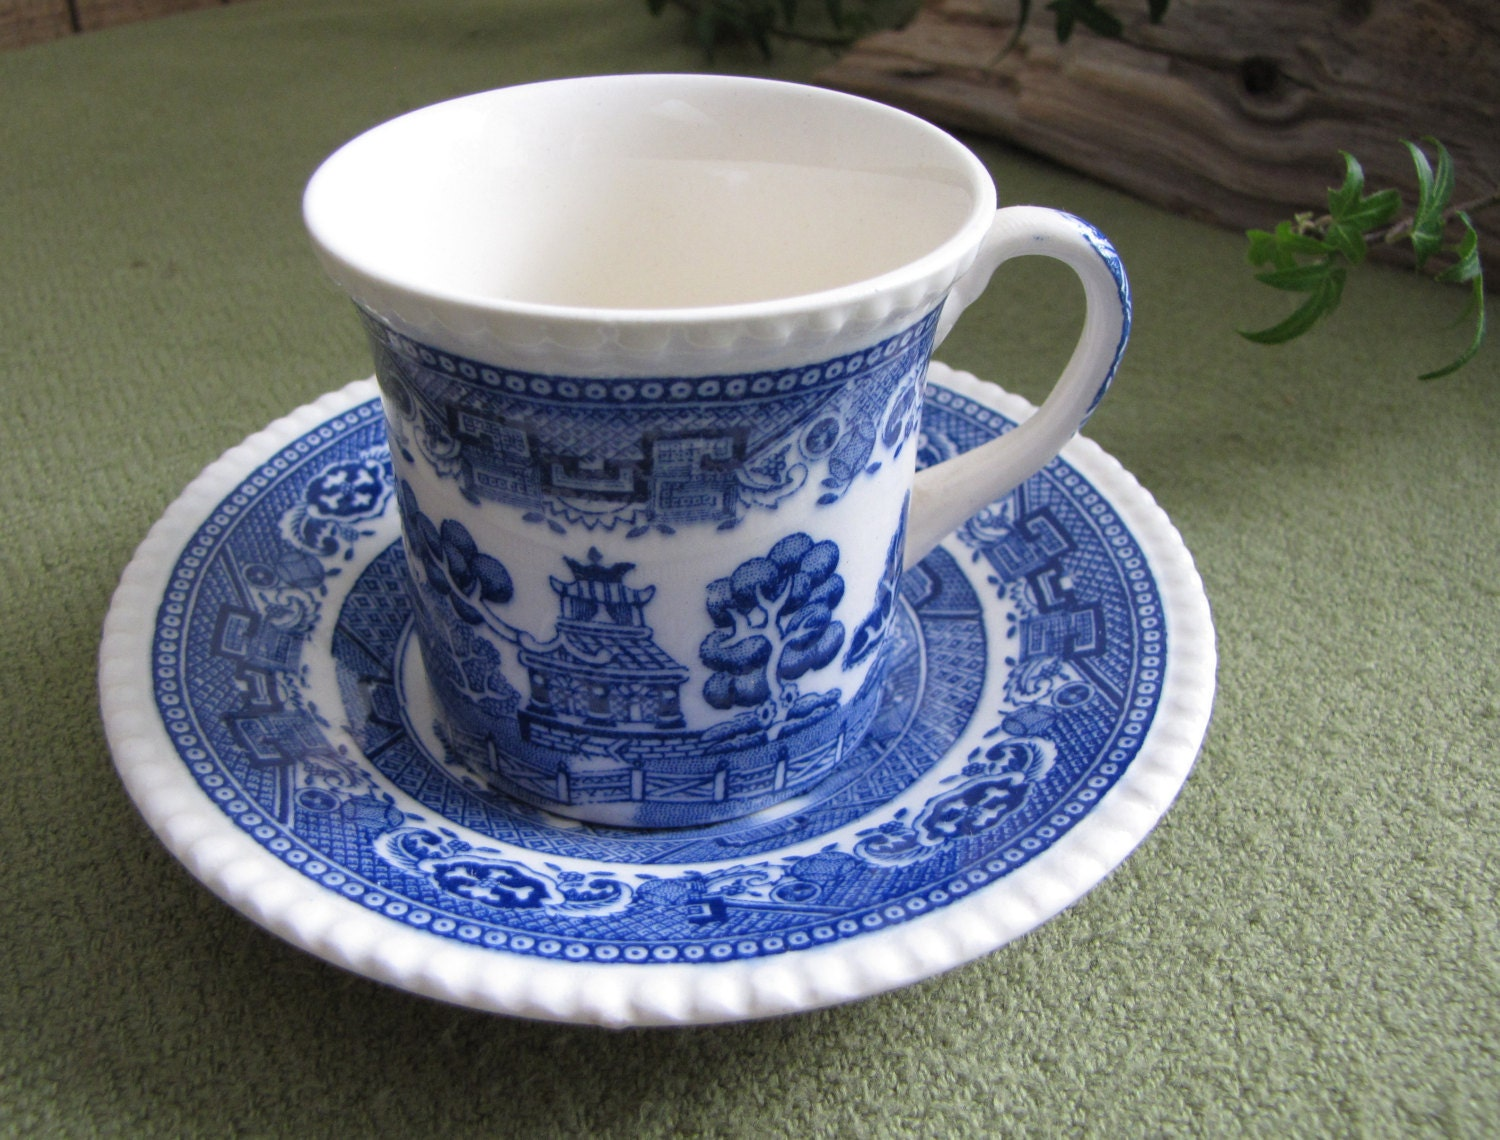 blue willow ware demitasse cup and saucer solian ware by. Black Bedroom Furniture Sets. Home Design Ideas